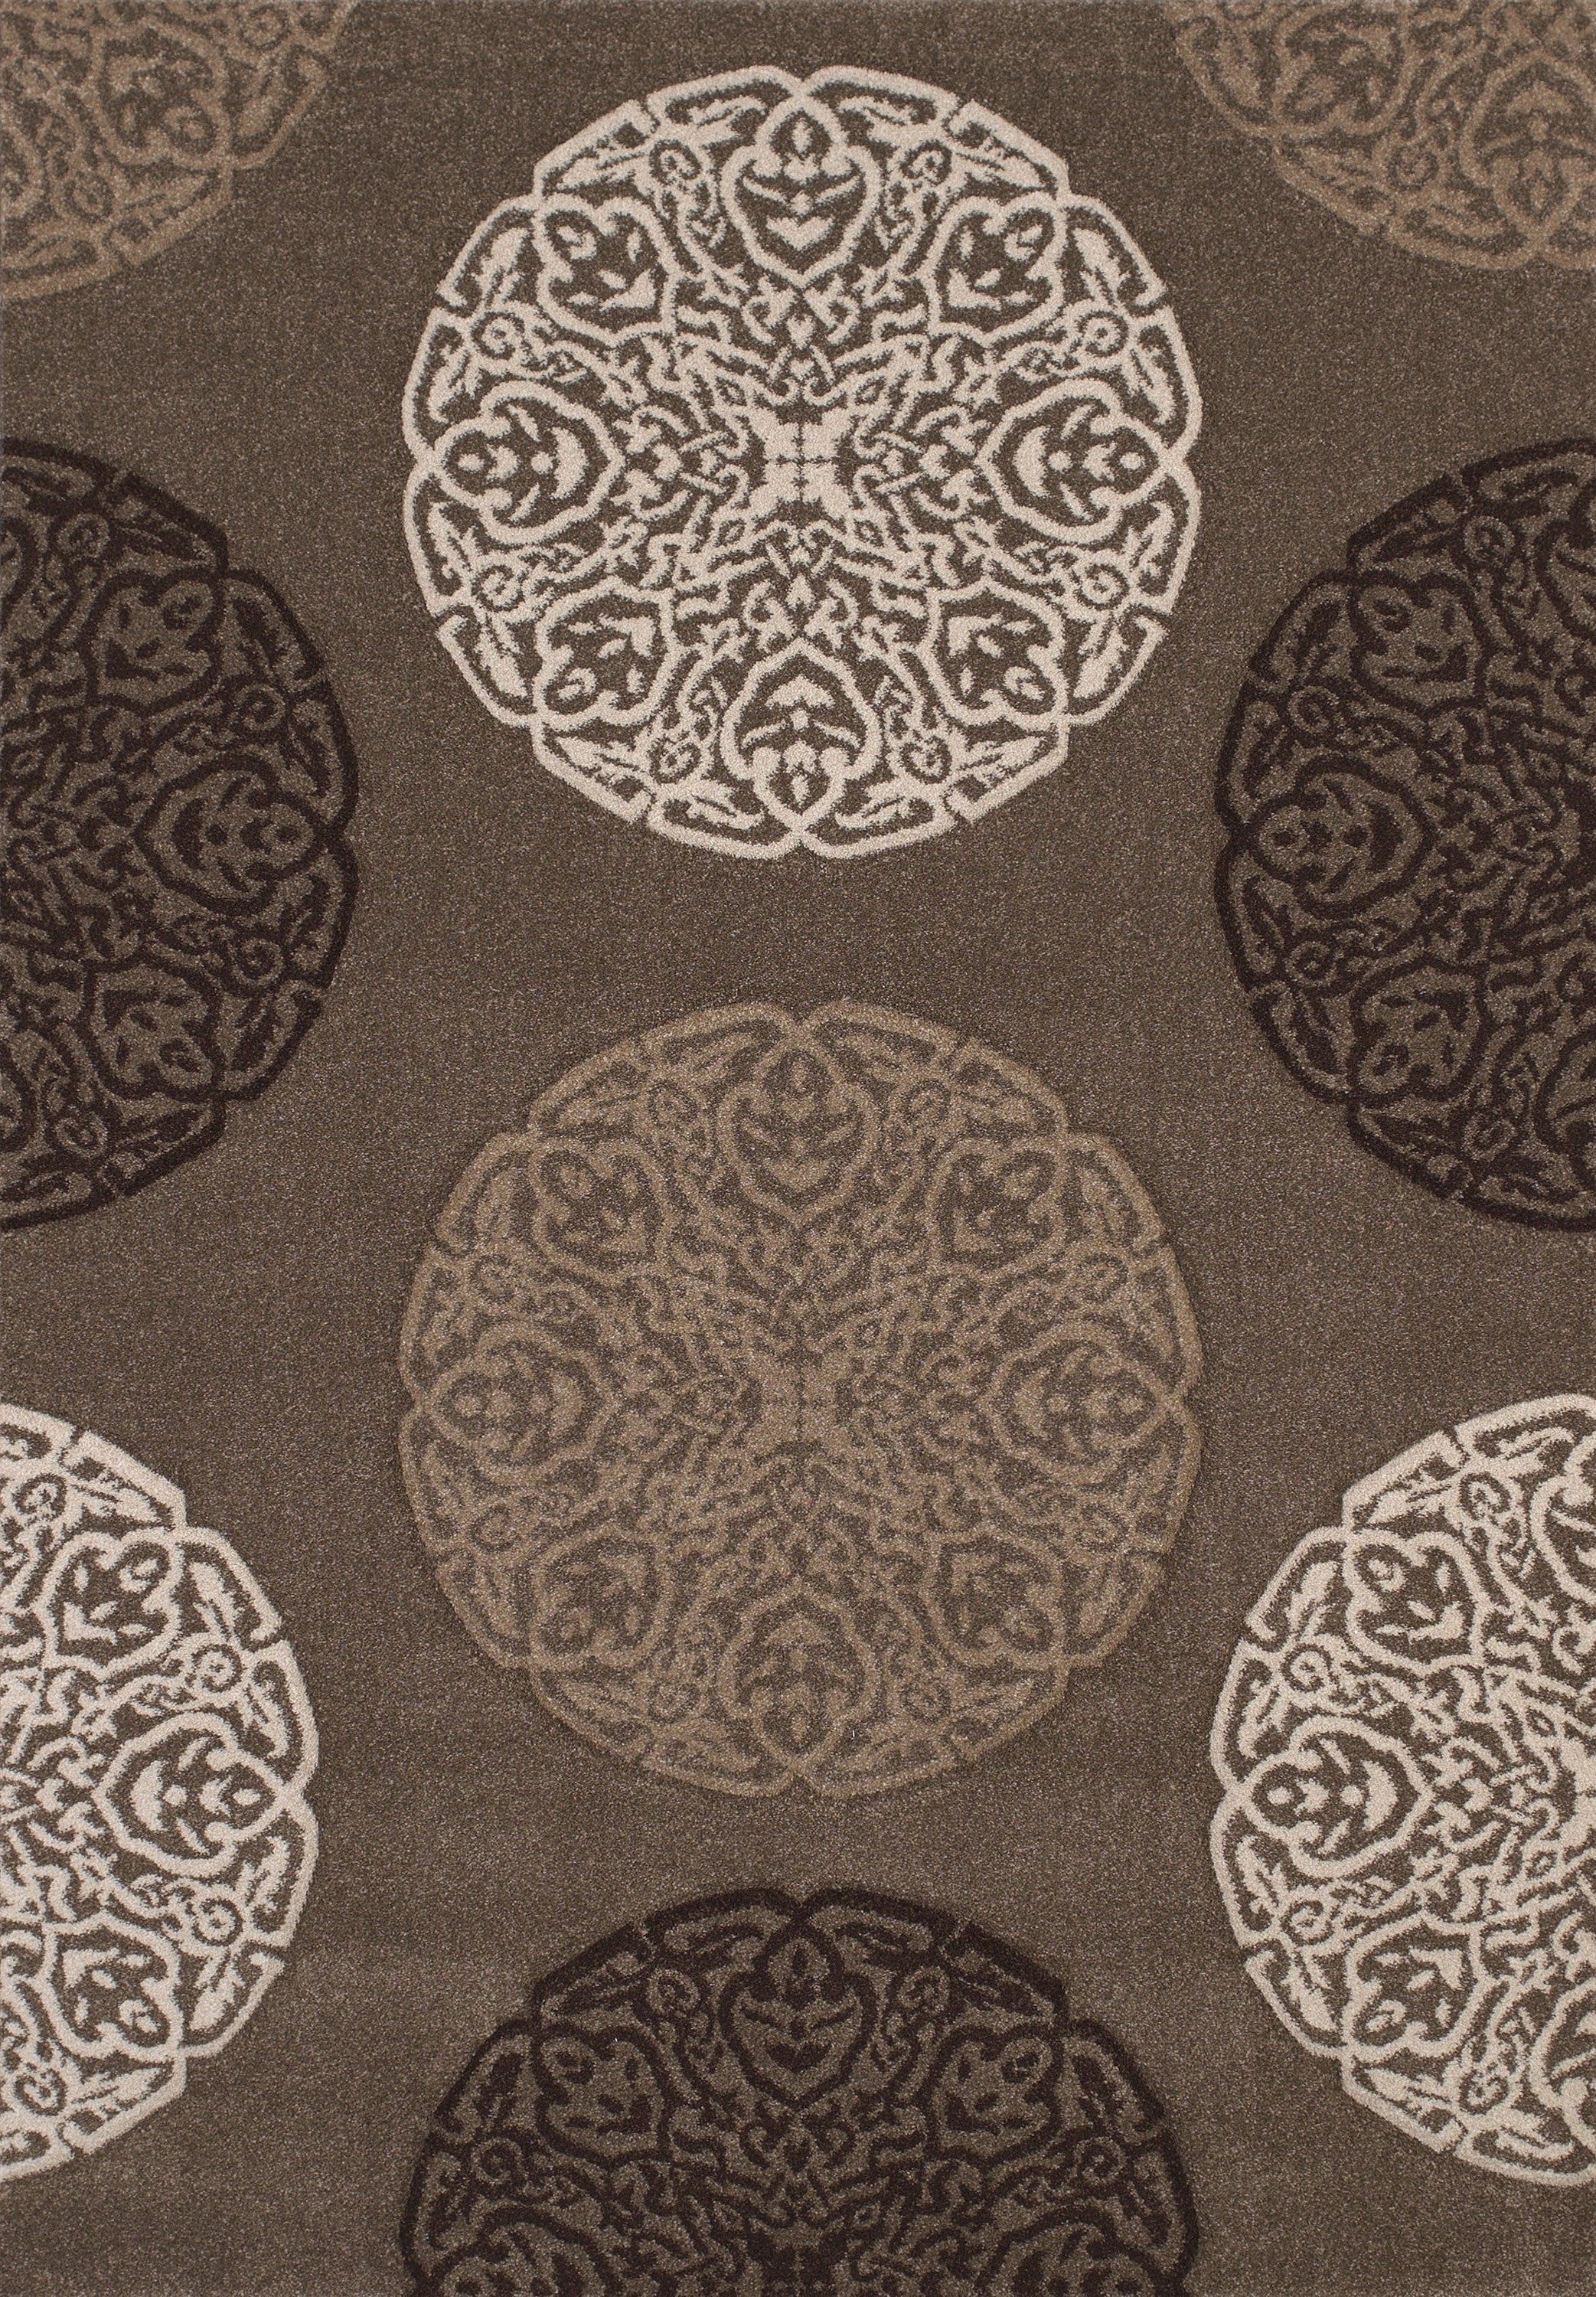 United Weavers - Townshend Rug Collection -GAZE STONE (401-01979)